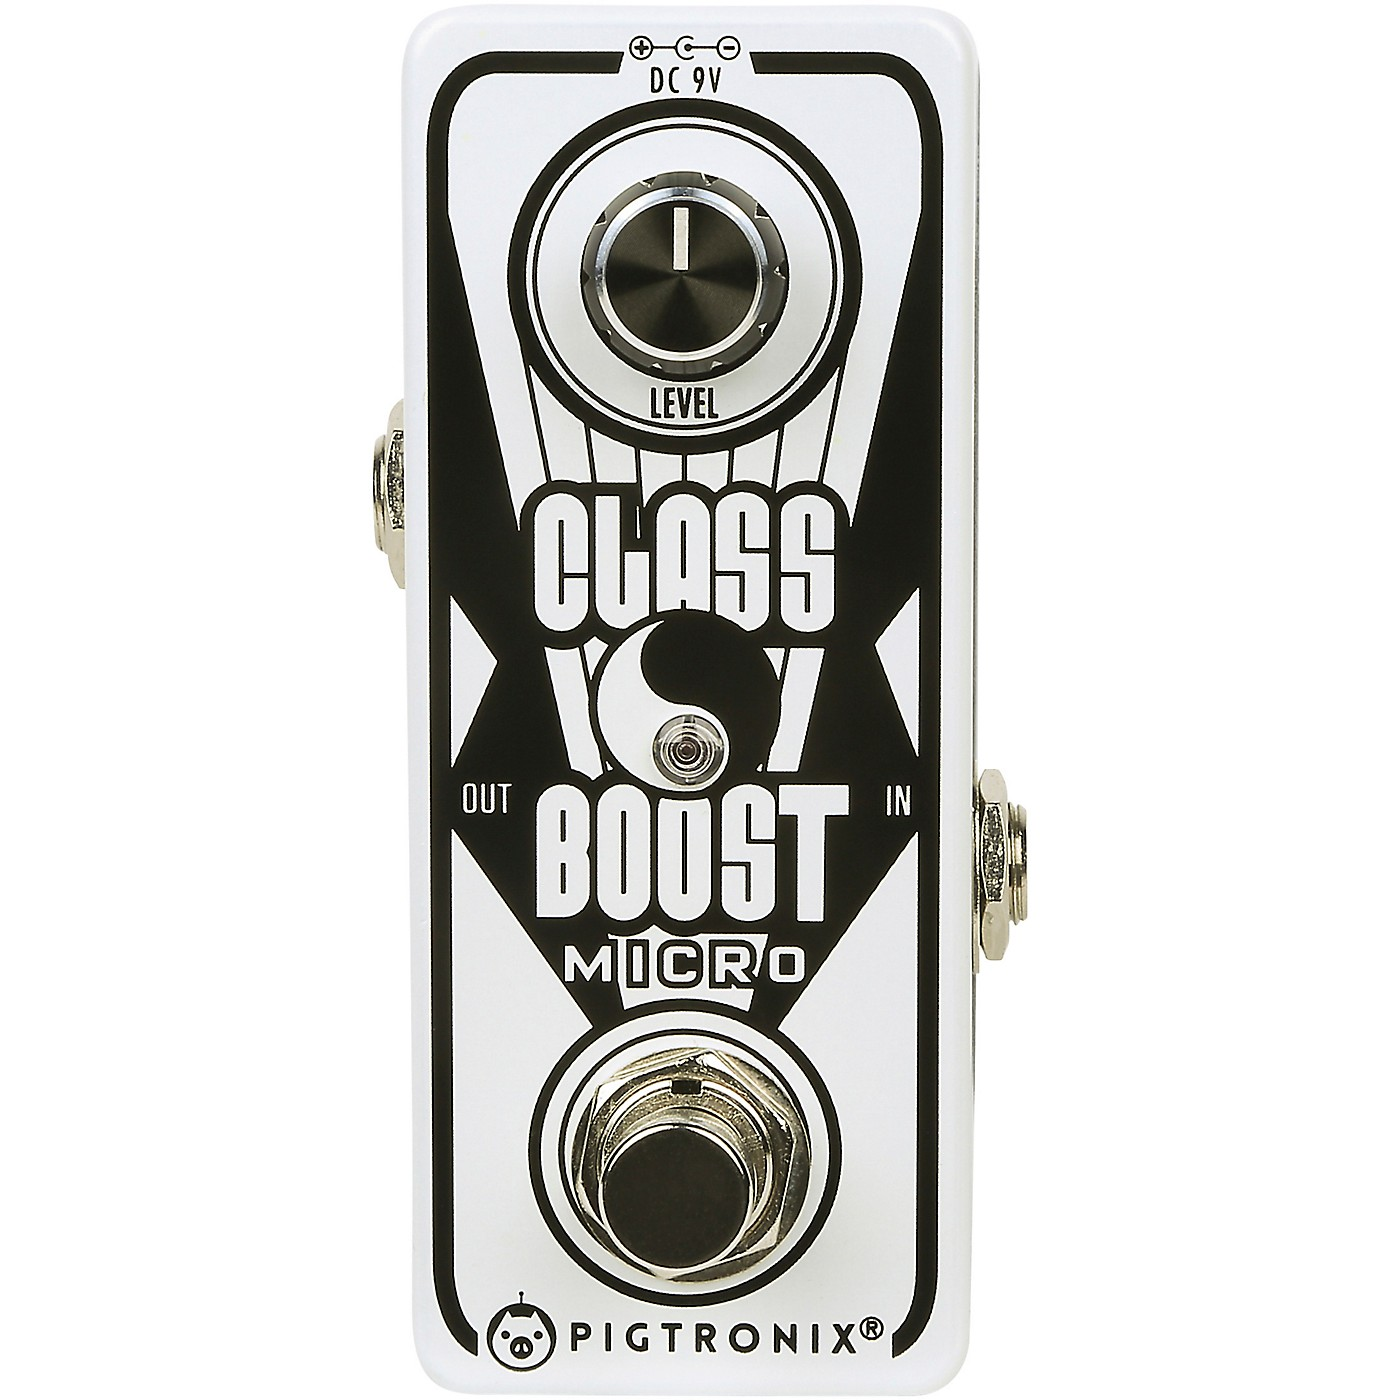 Pigtronix Class A Boost Micro Effects Pedal thumbnail